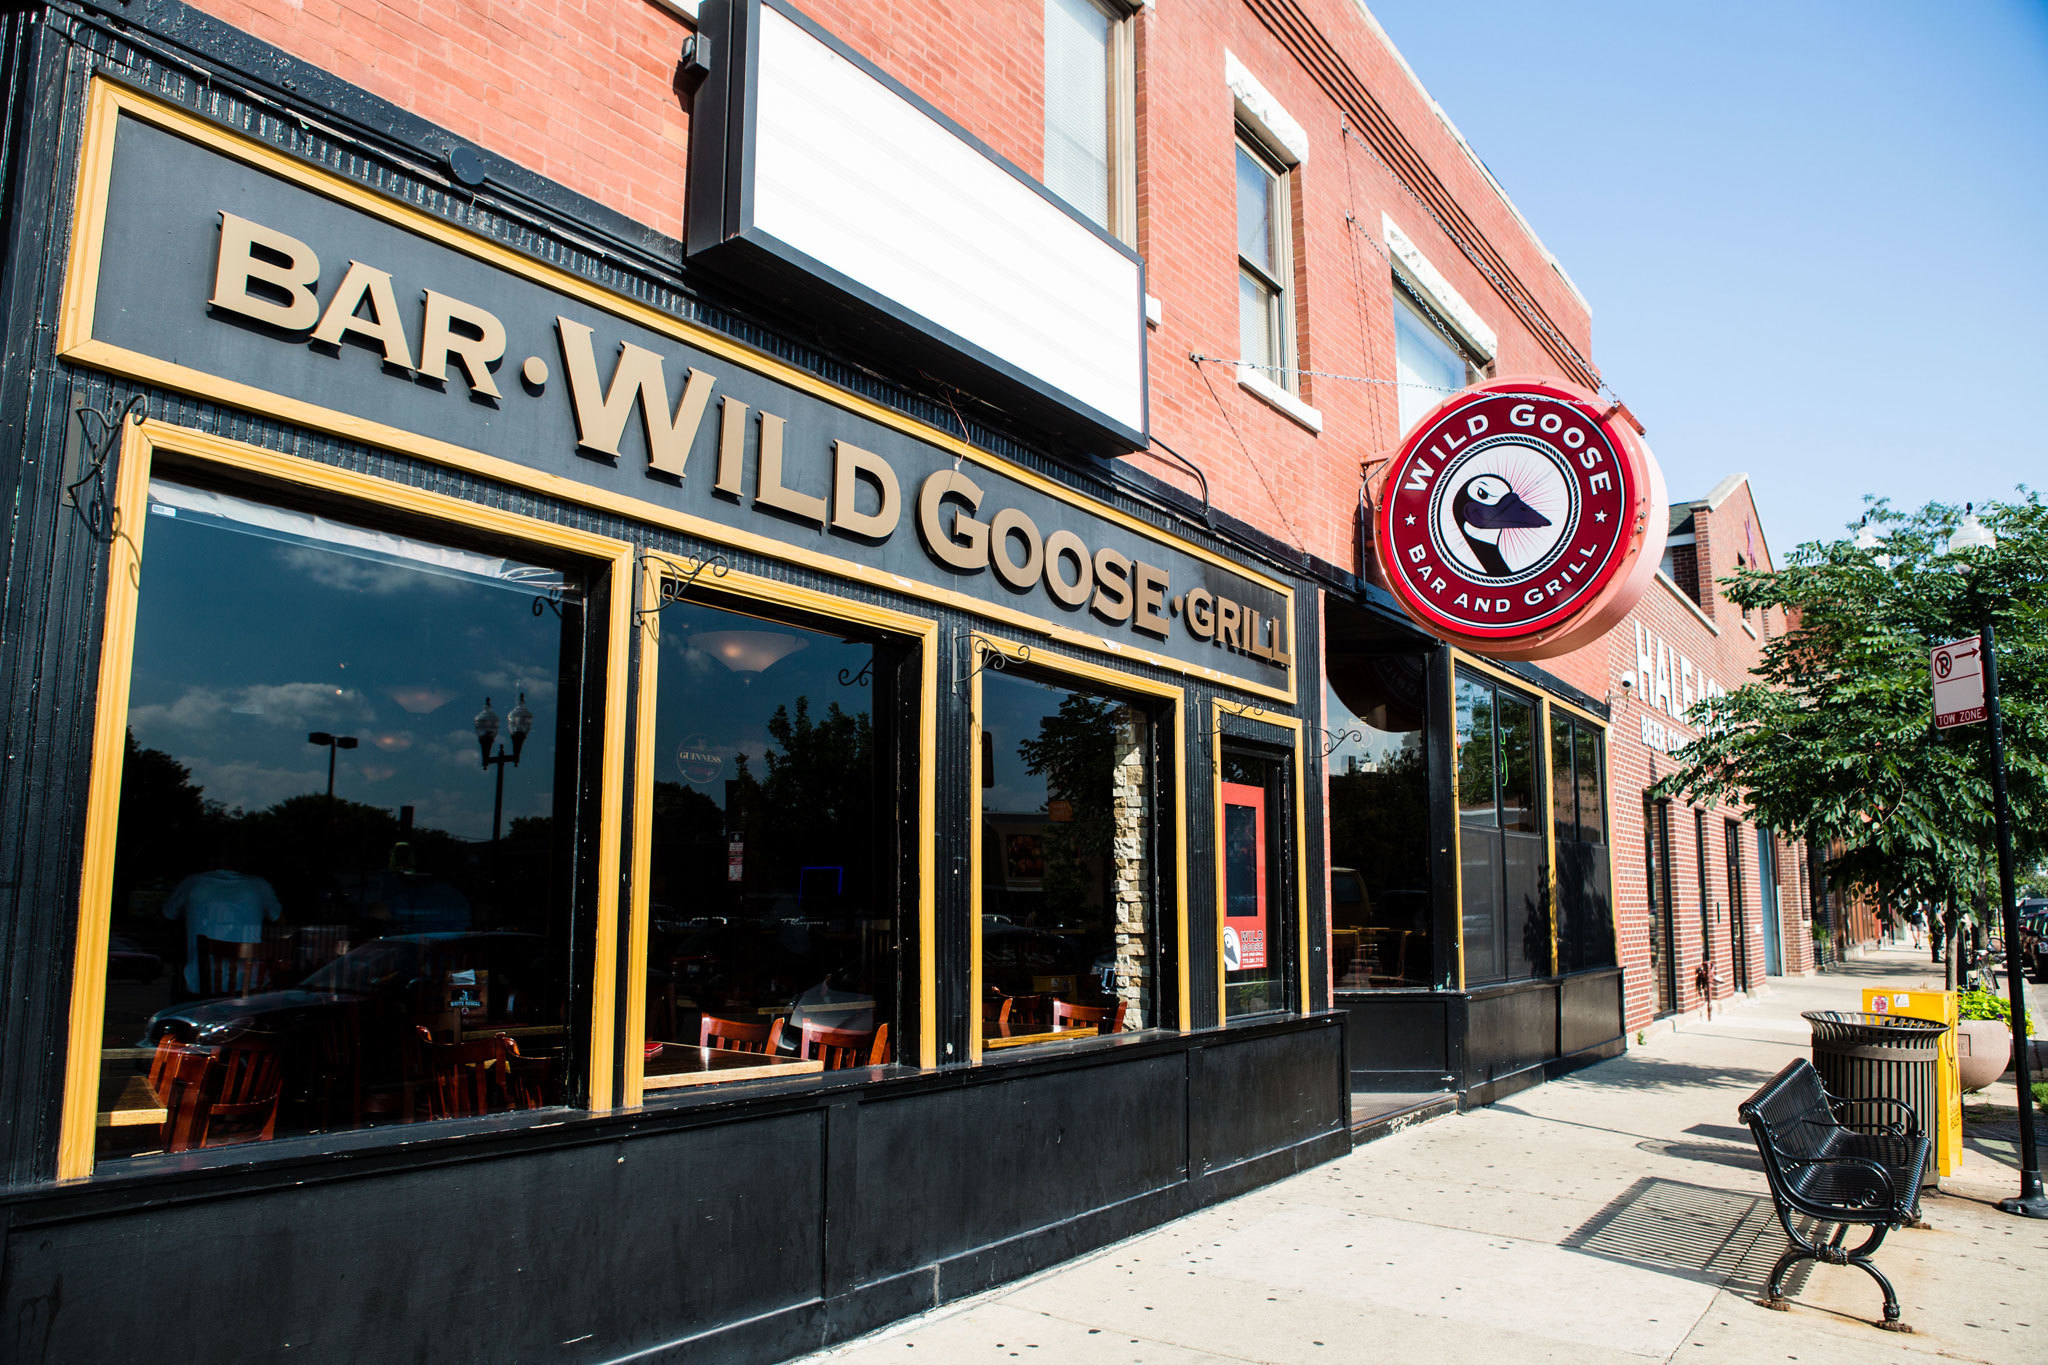 WildGoose.Venue.jpg